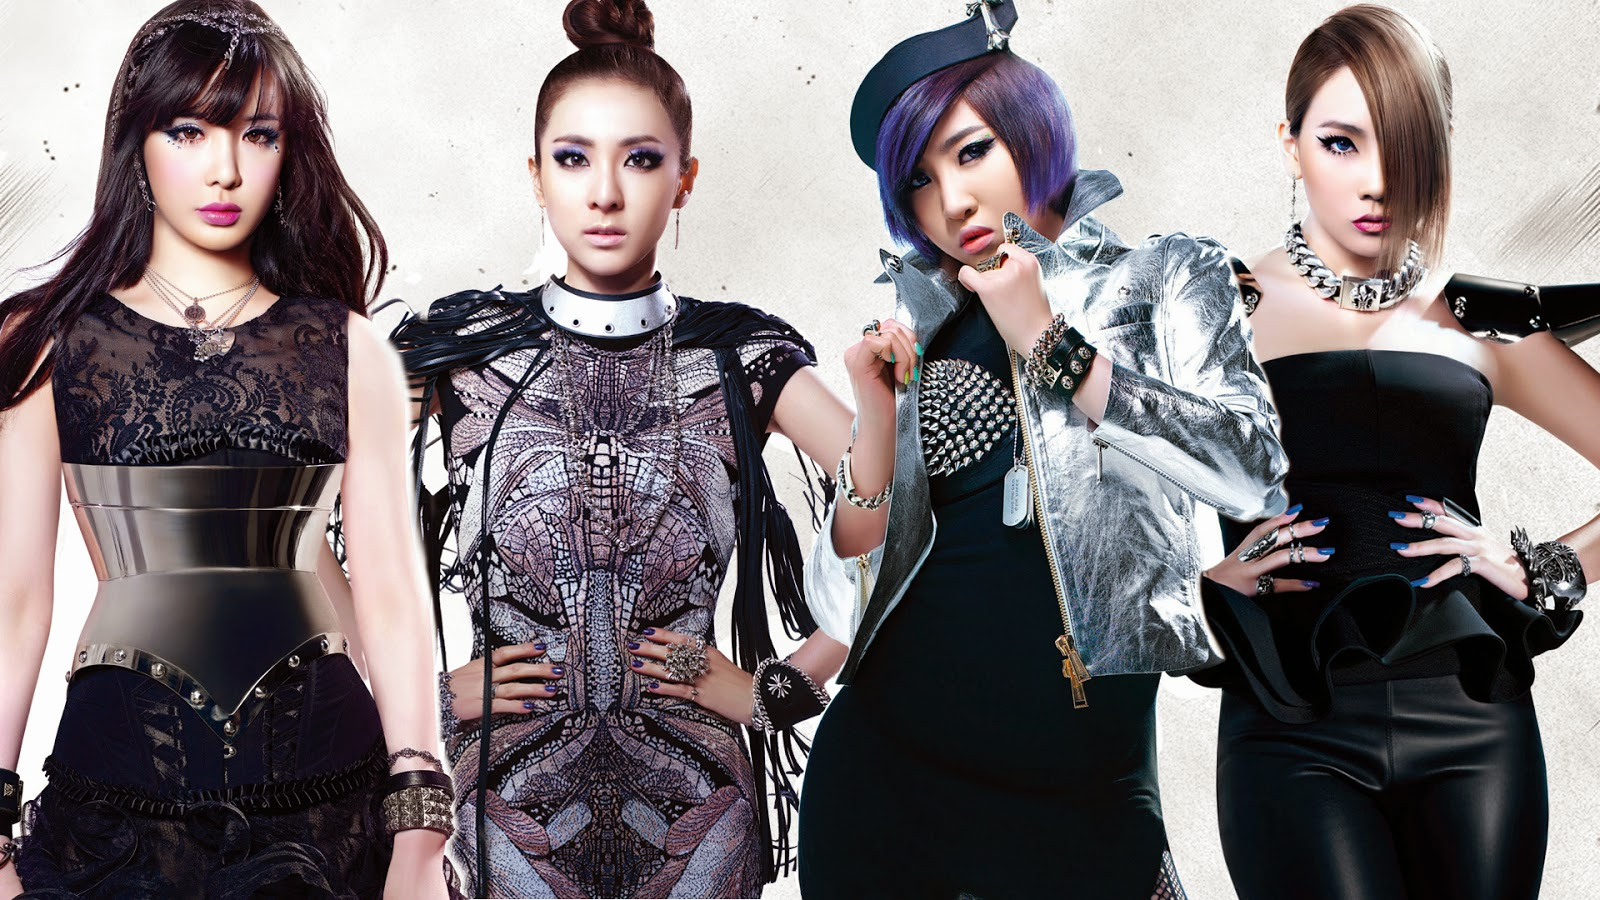 2NE1 Wallpaper HD 2014 Come Back Home - Free Kpop ...